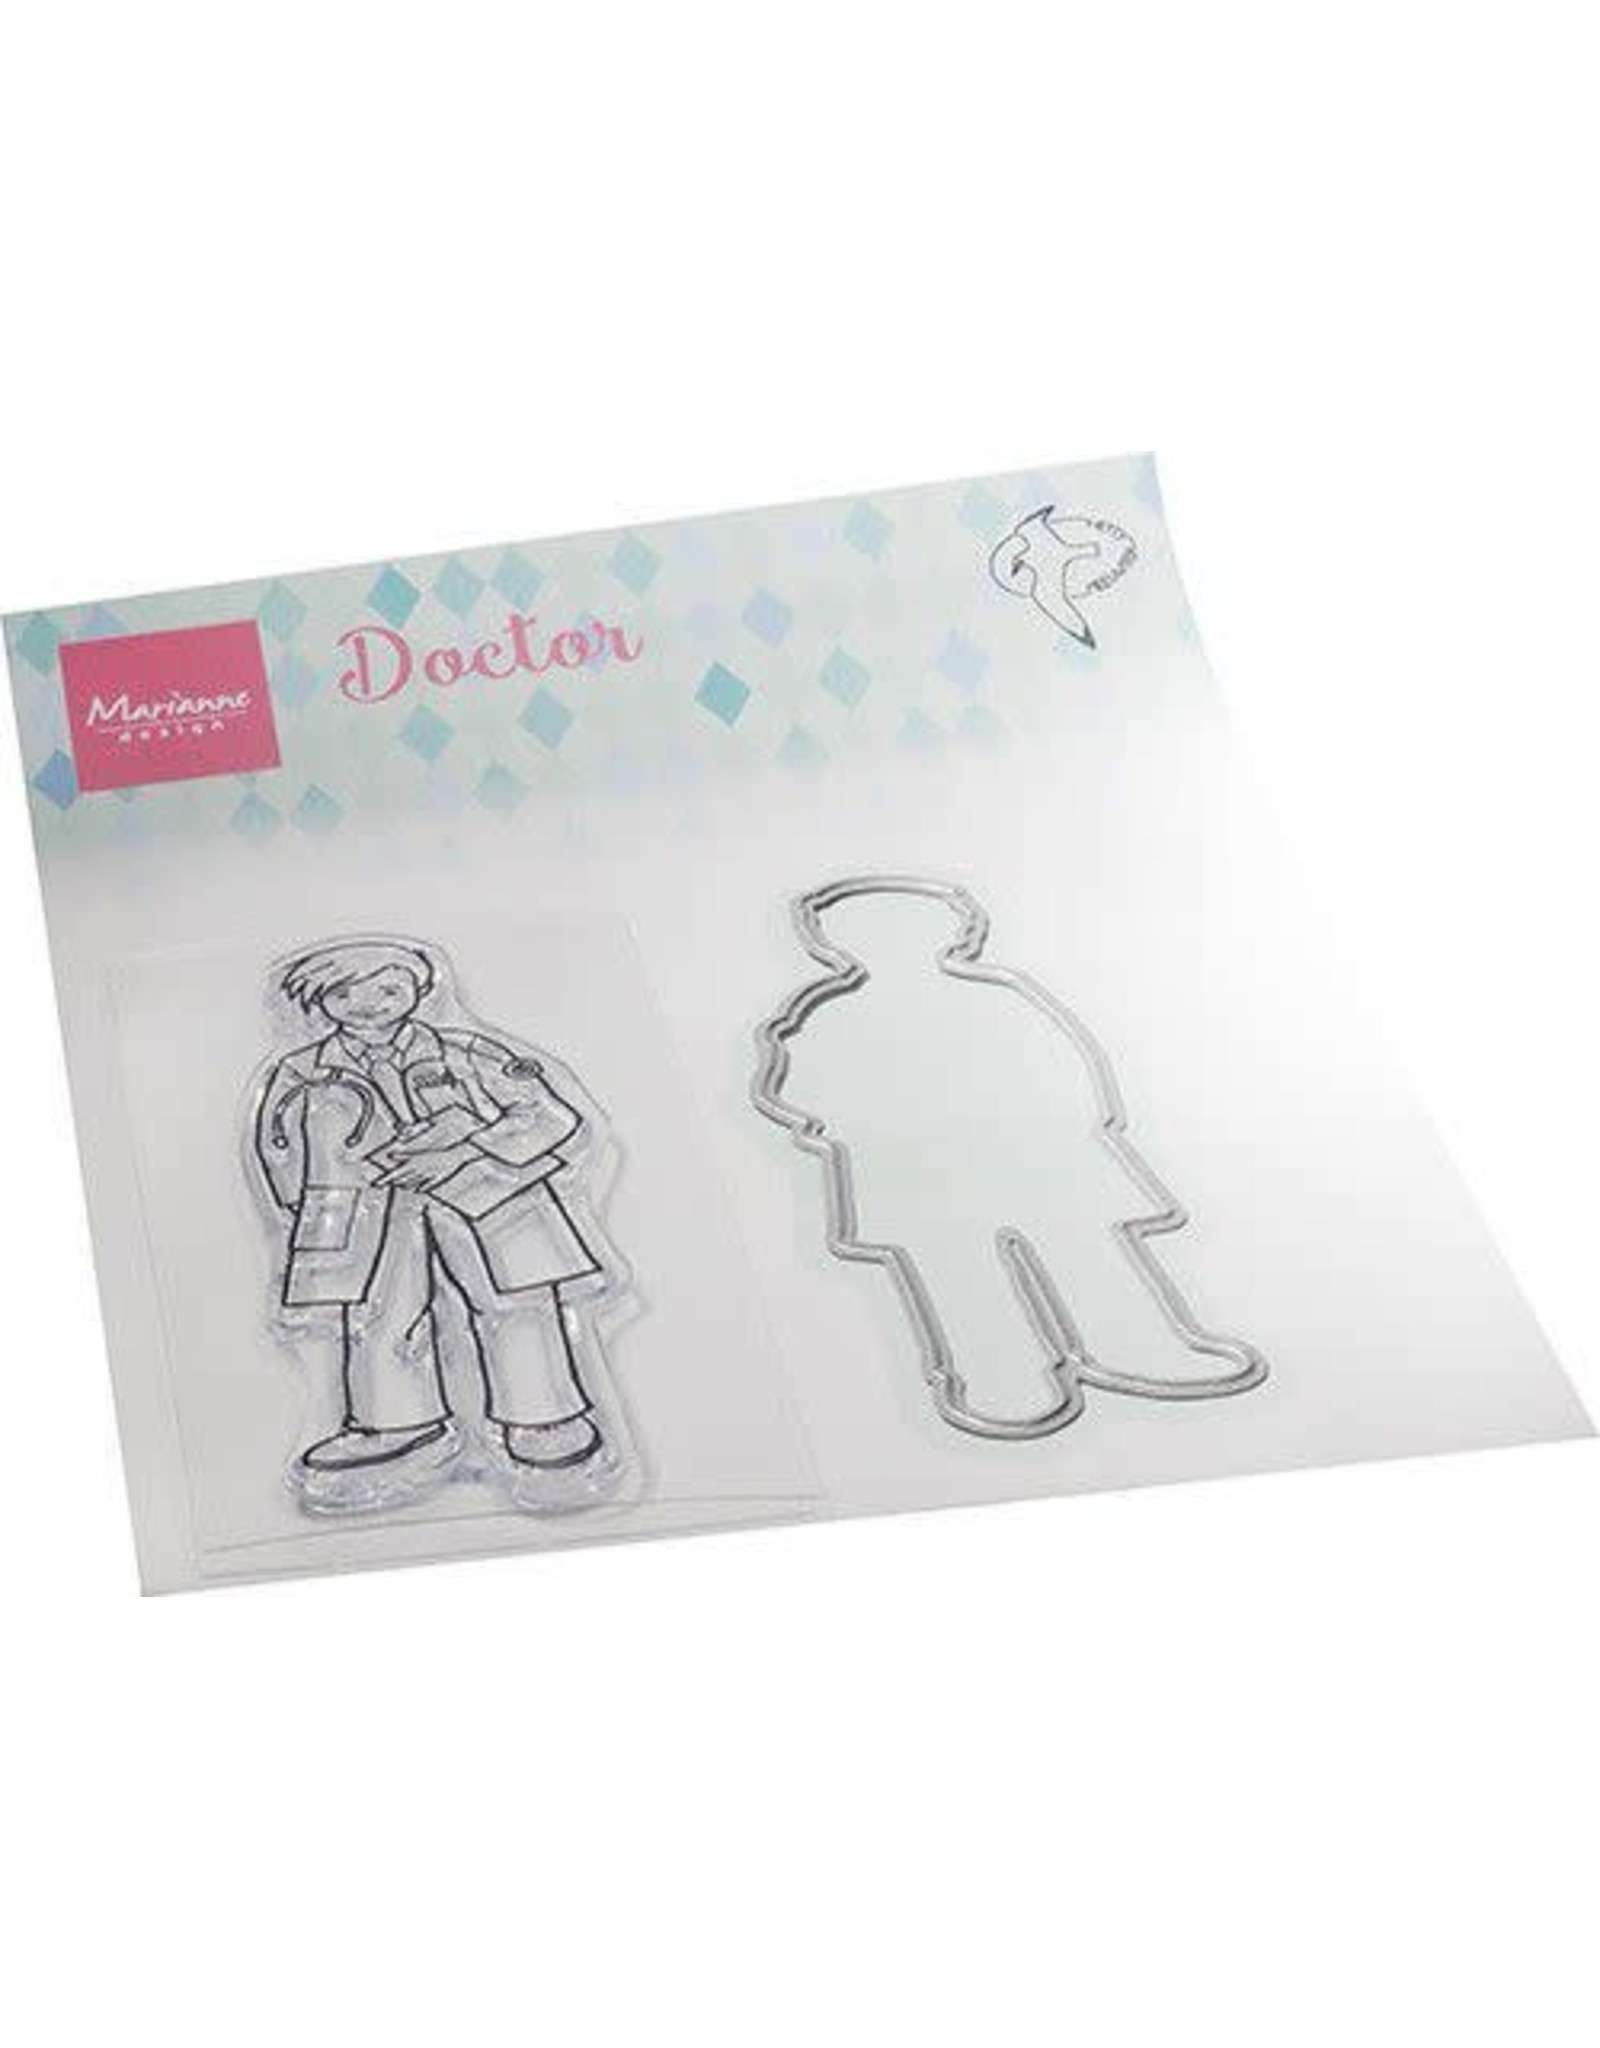 Marianne Design Marianne D Clear Stamps Hetty's Dokter HT1660 30x85mm, 32x87mm